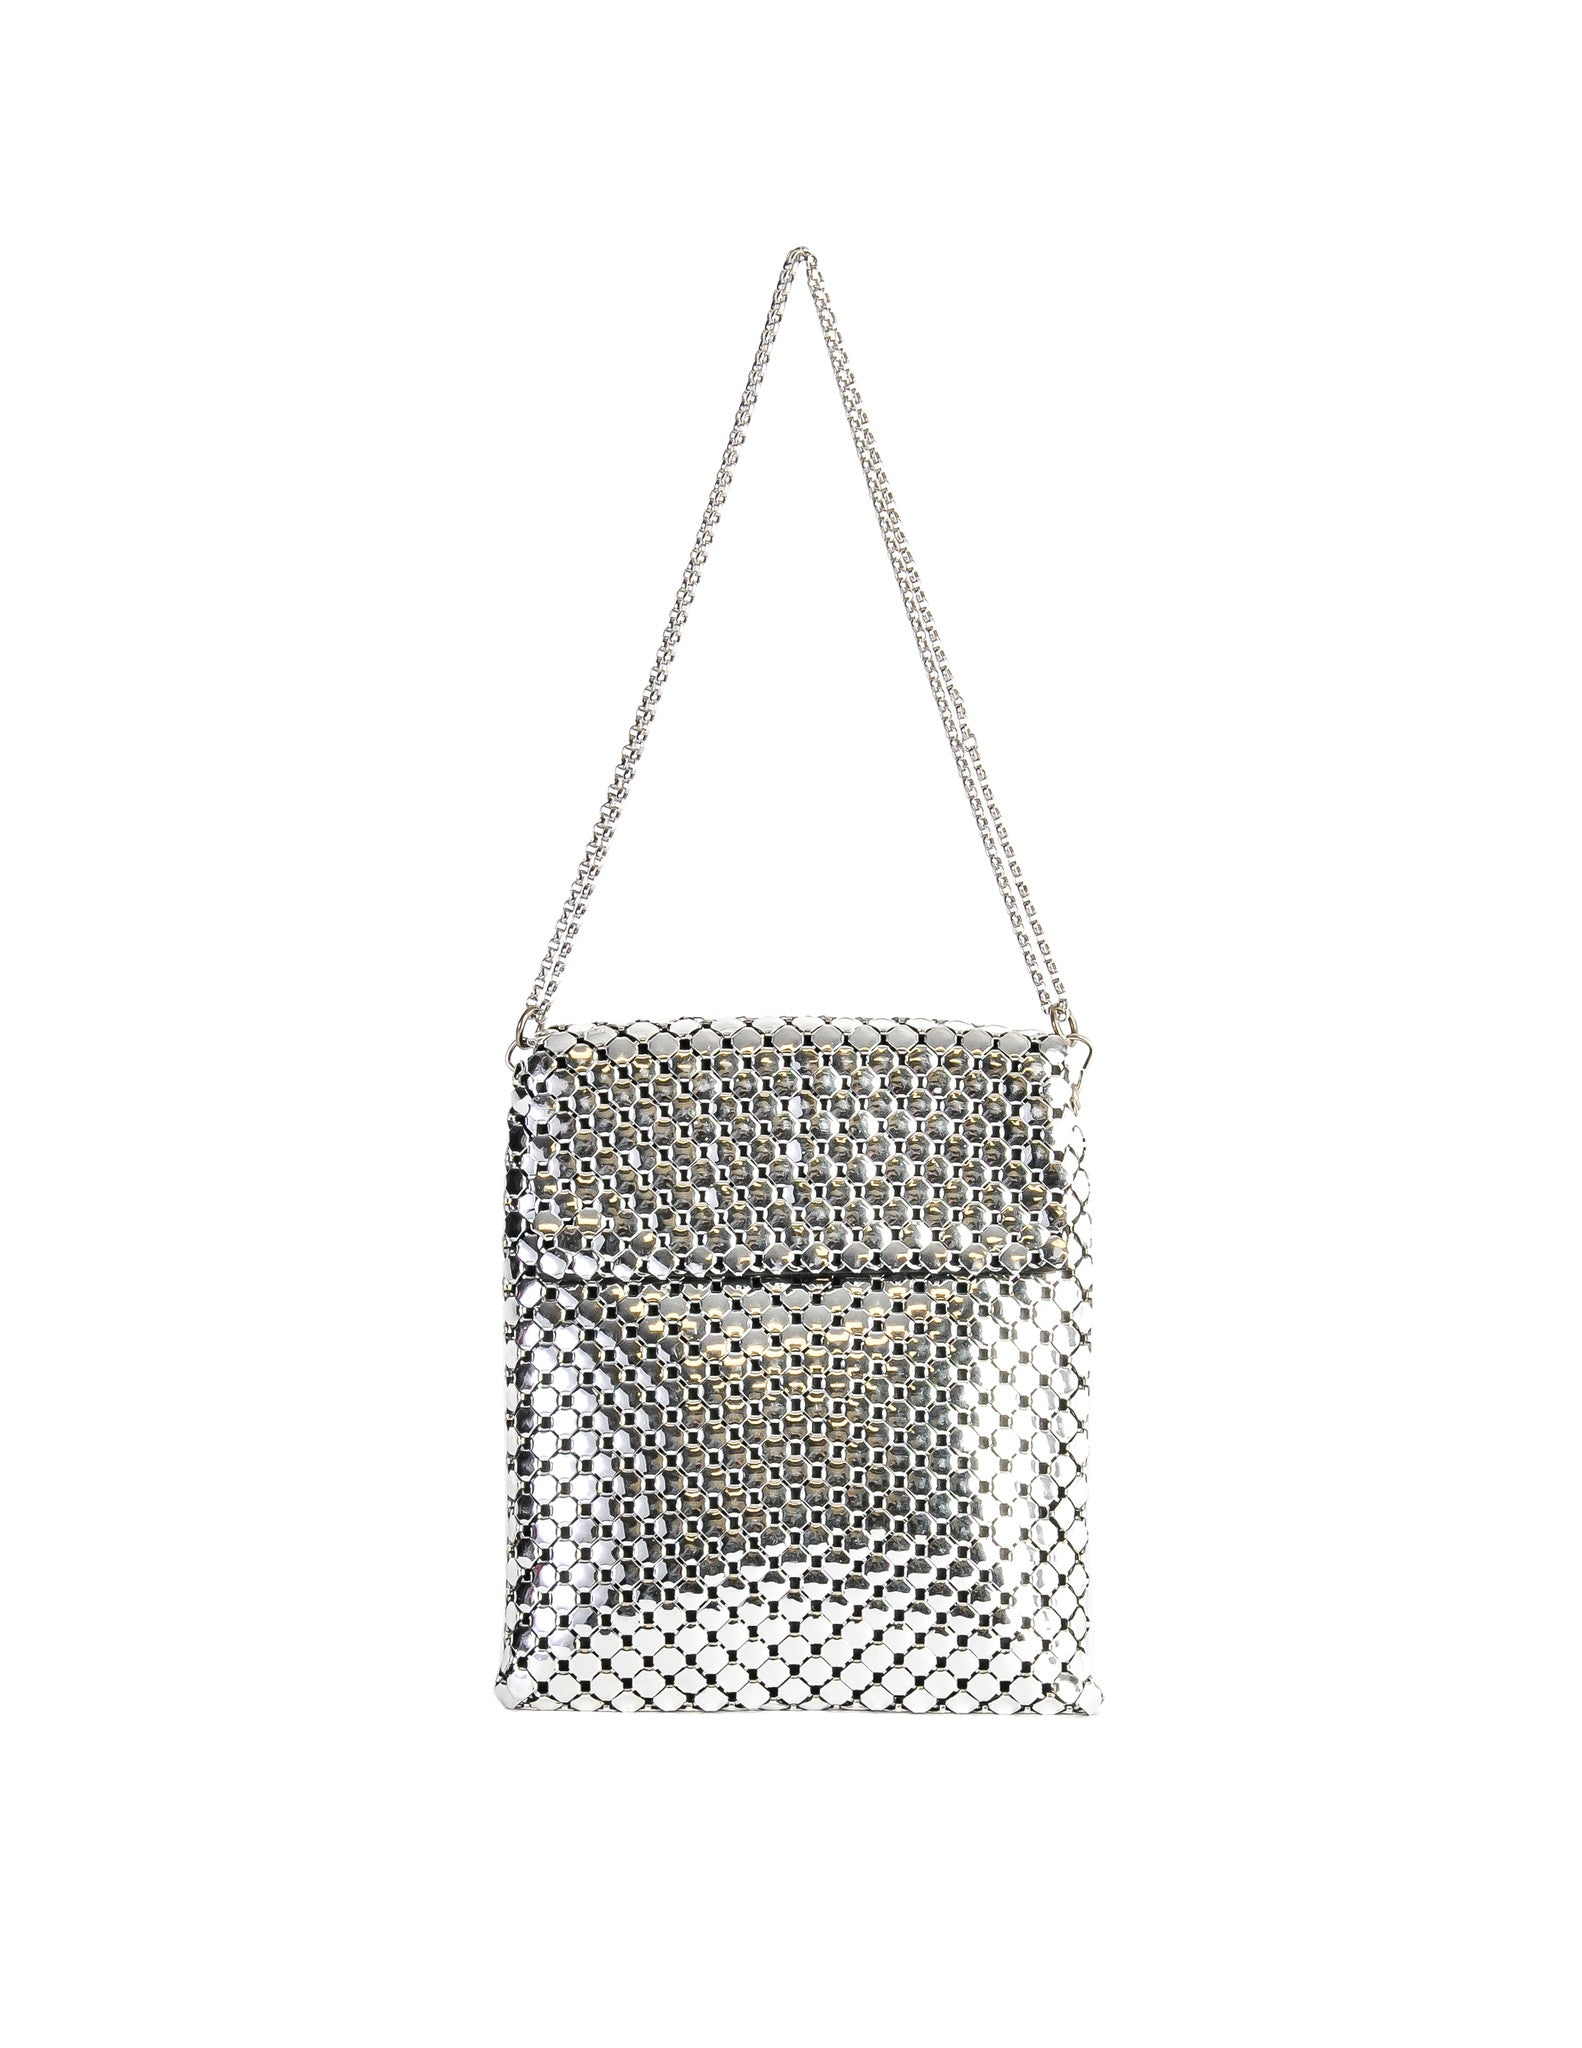 Whiting & Davis Vintage Silver Mesh Shoulder Bag - Amarcord Vintage Fashion  - 1